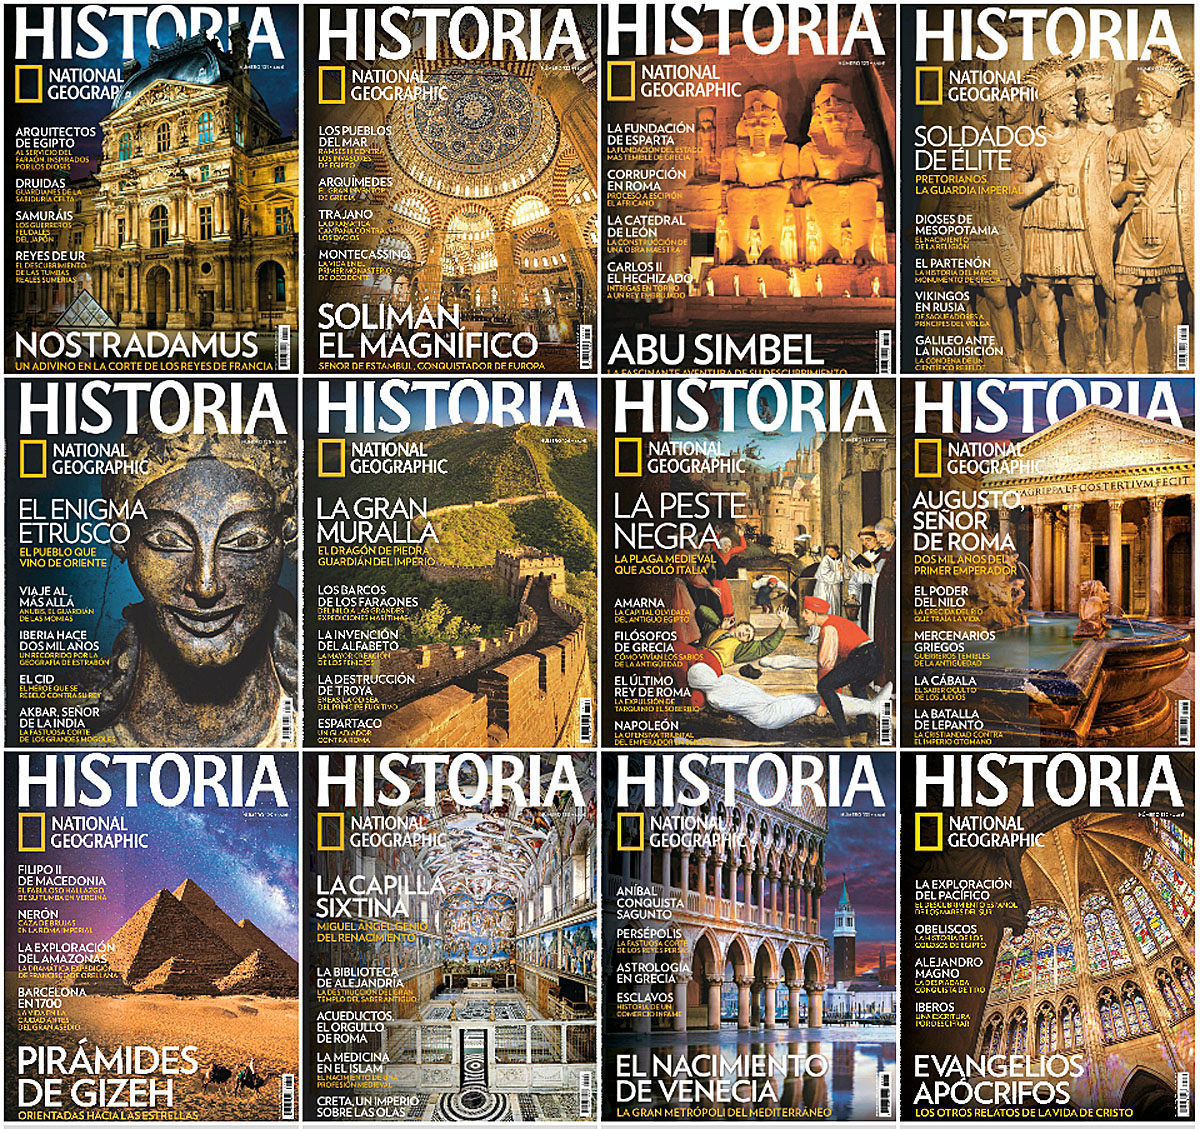 Historia National Geographic - Full Year 2014 Issues Collection free download